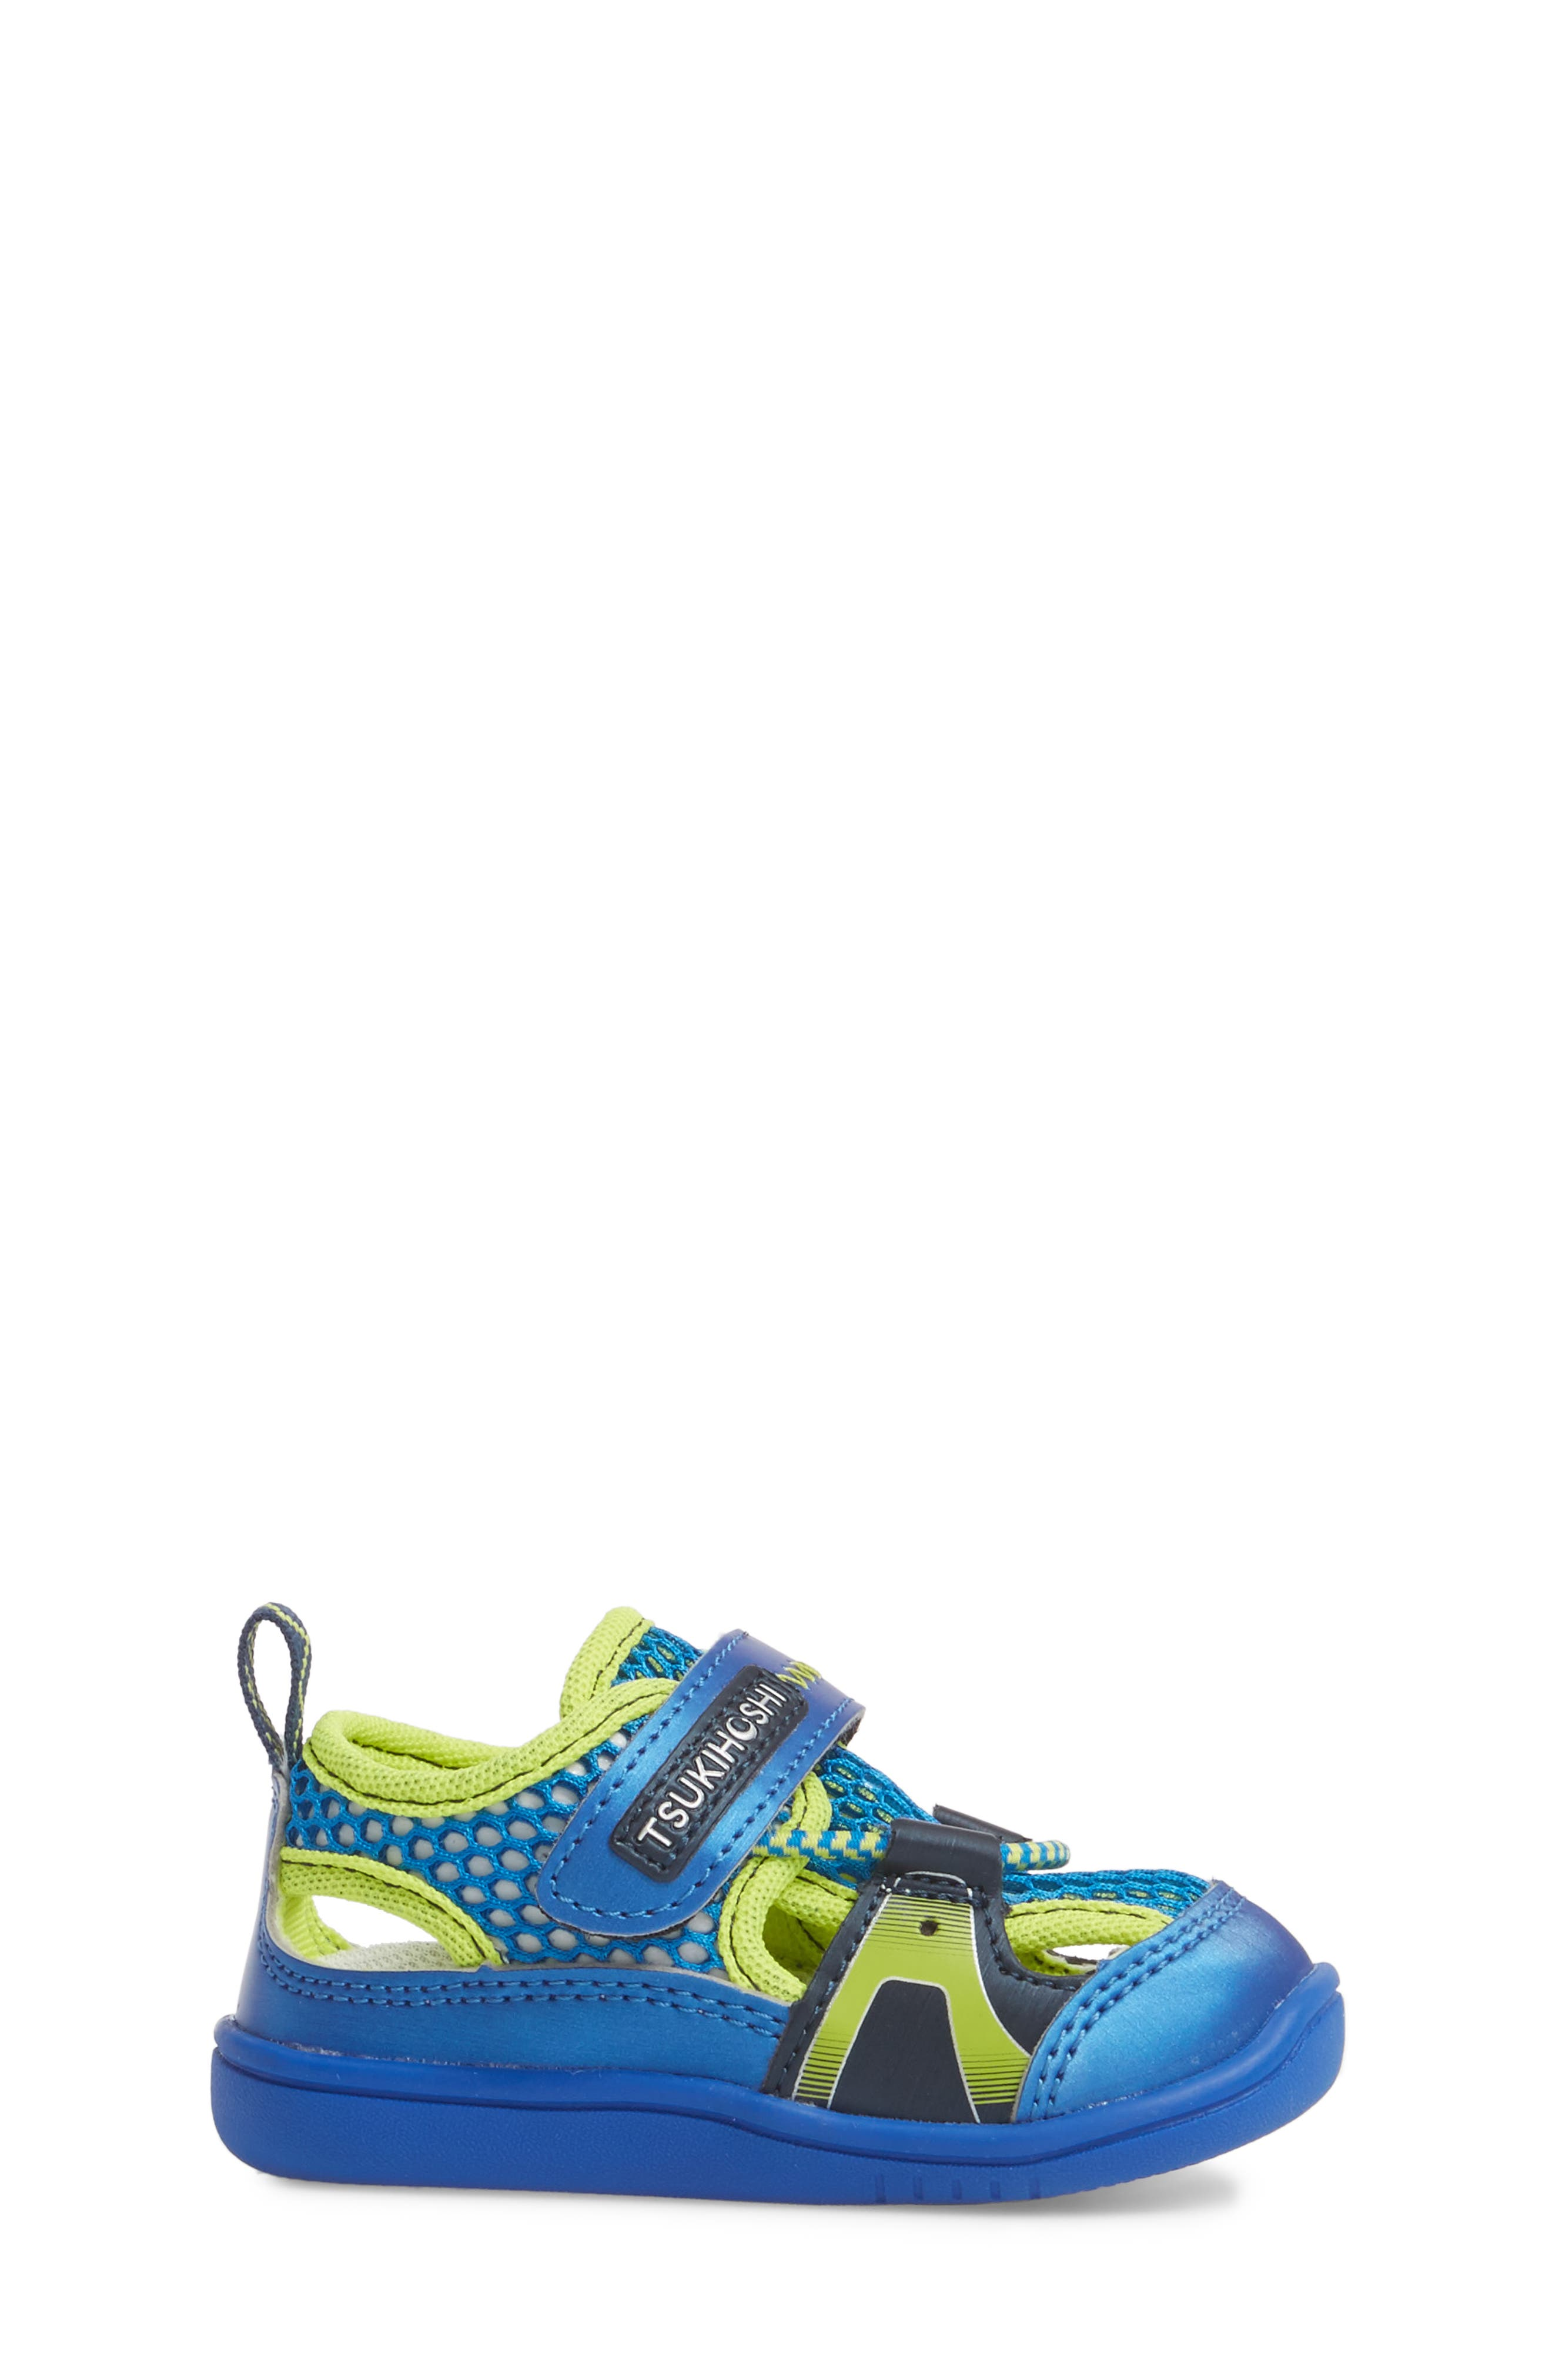 Ibiza Washable Sandal,                             Alternate thumbnail 3, color,                             ROYAL/ LIME